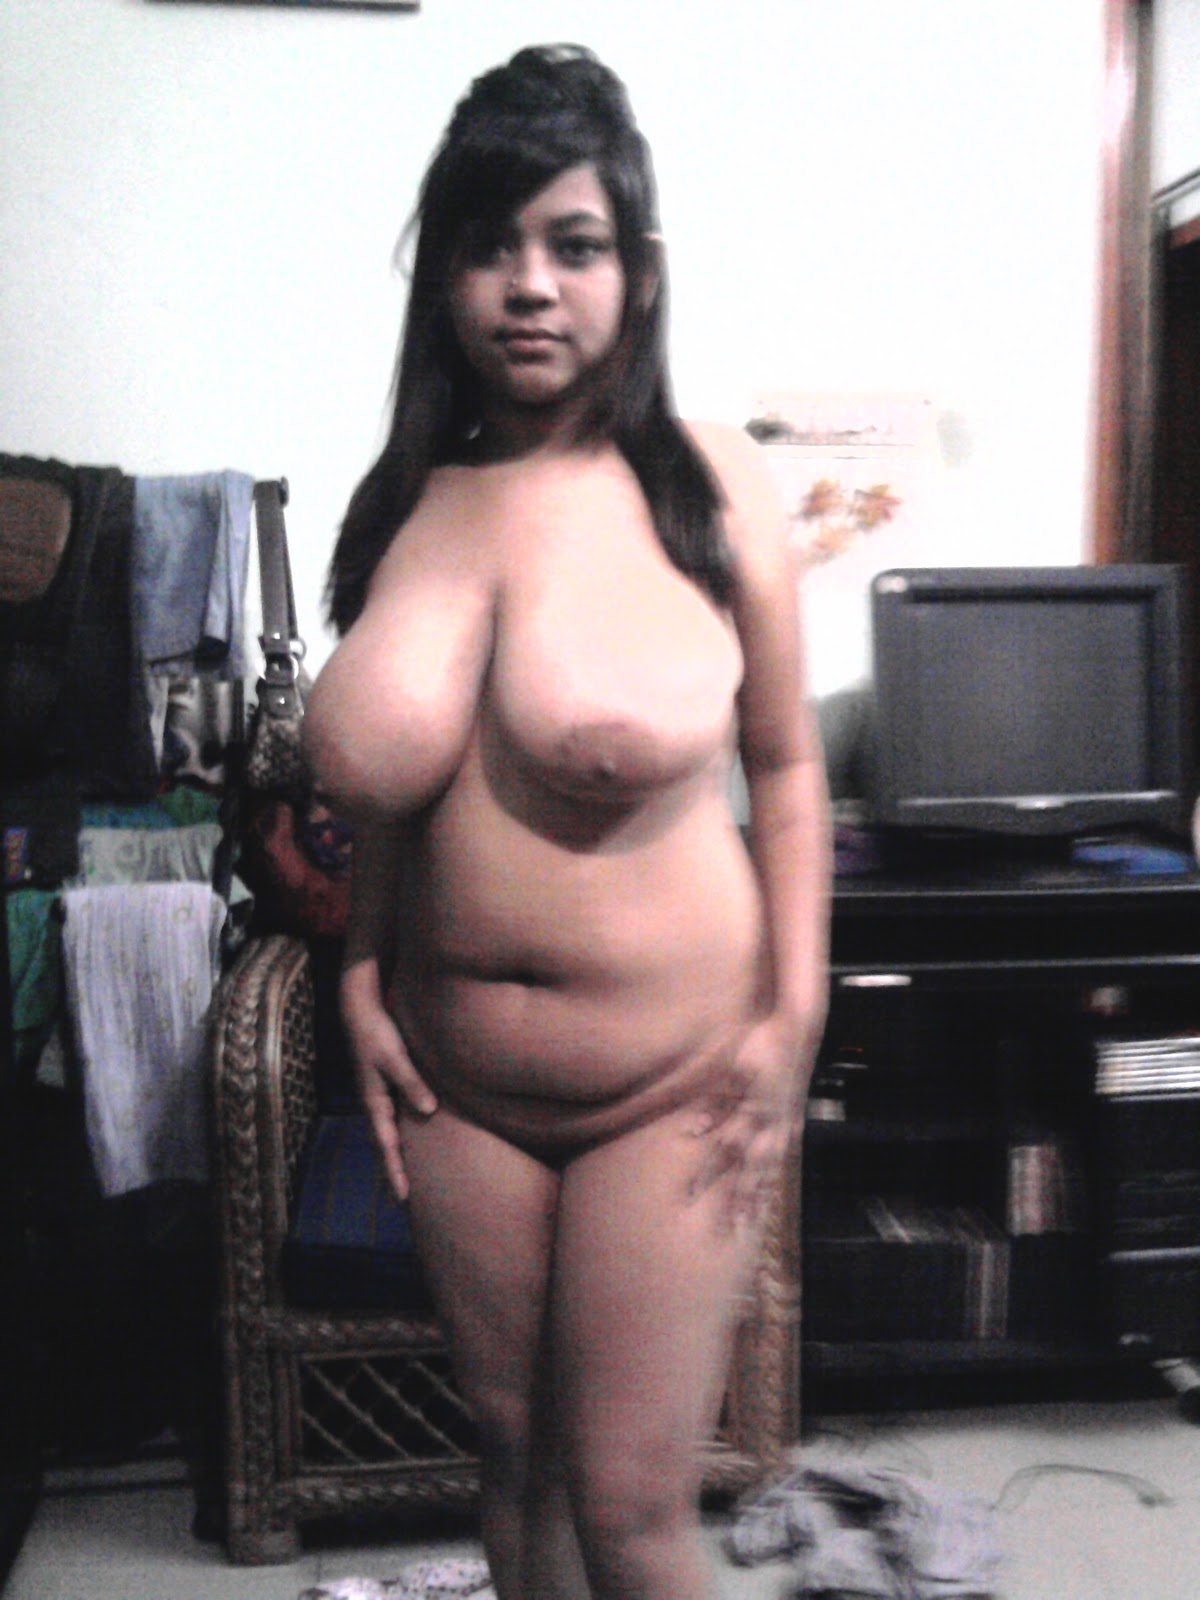 bd nude photo gallery